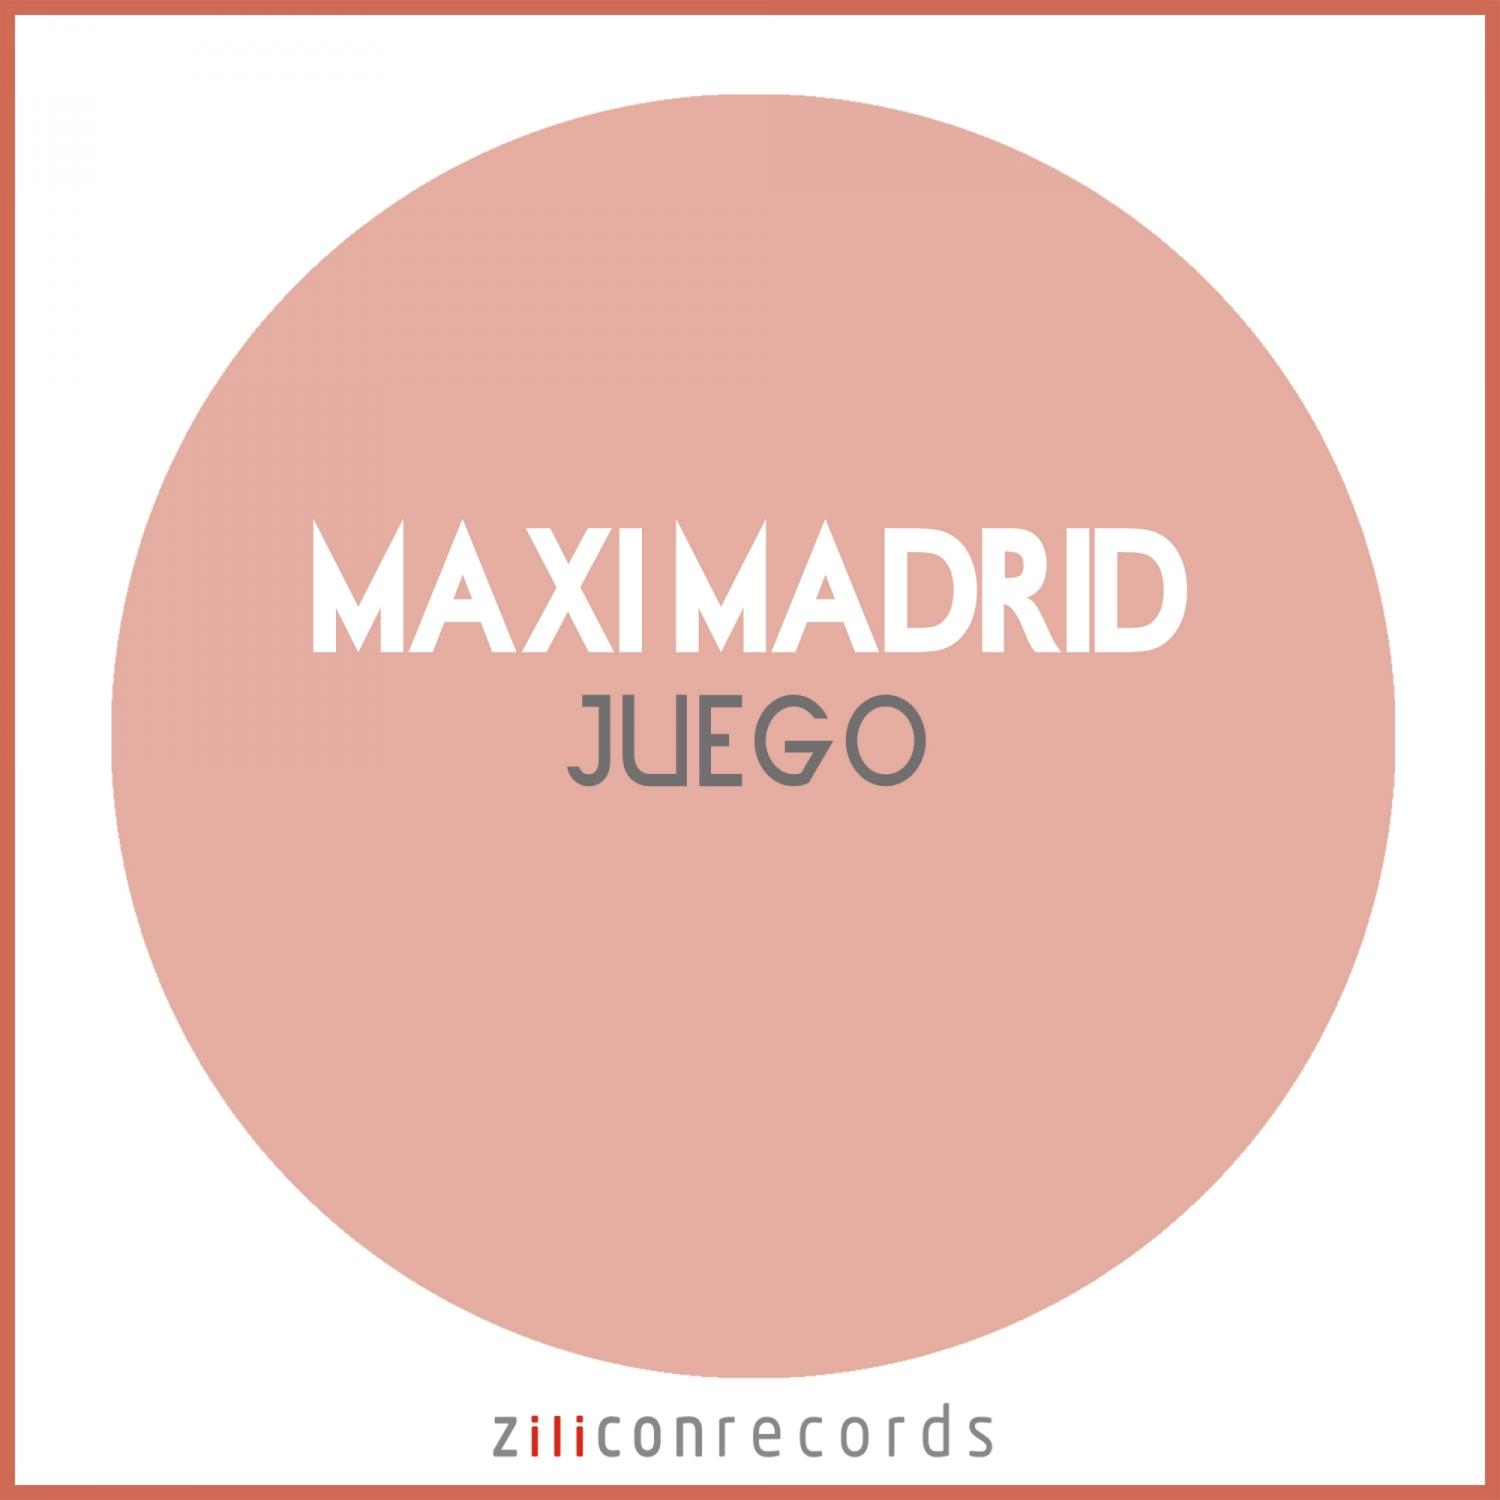 Maxi Madrid - Juego  (Original Mix)